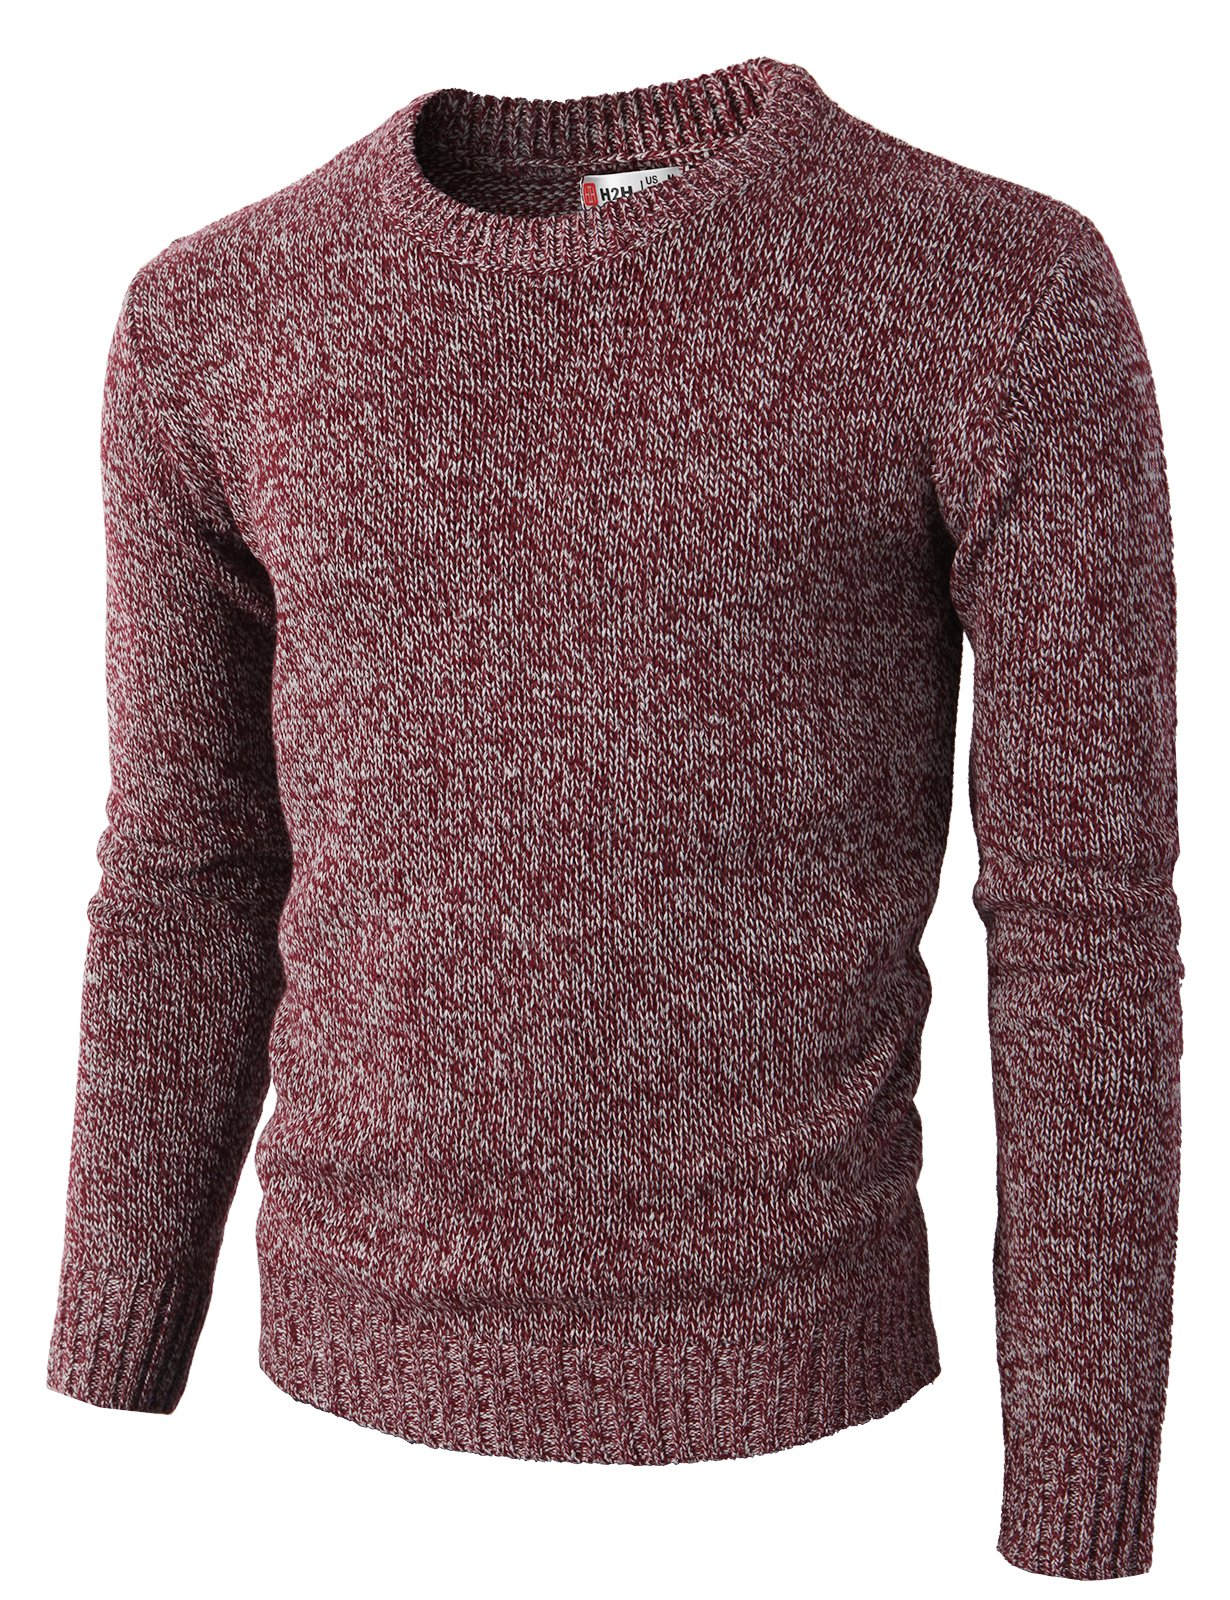 H2H Mens Slim Fit Basic Ribbed Thermal Turtleneck Pullover Sweaters Maroon US M/Asia L (KMOSWL0122) by H2H (Image #1)